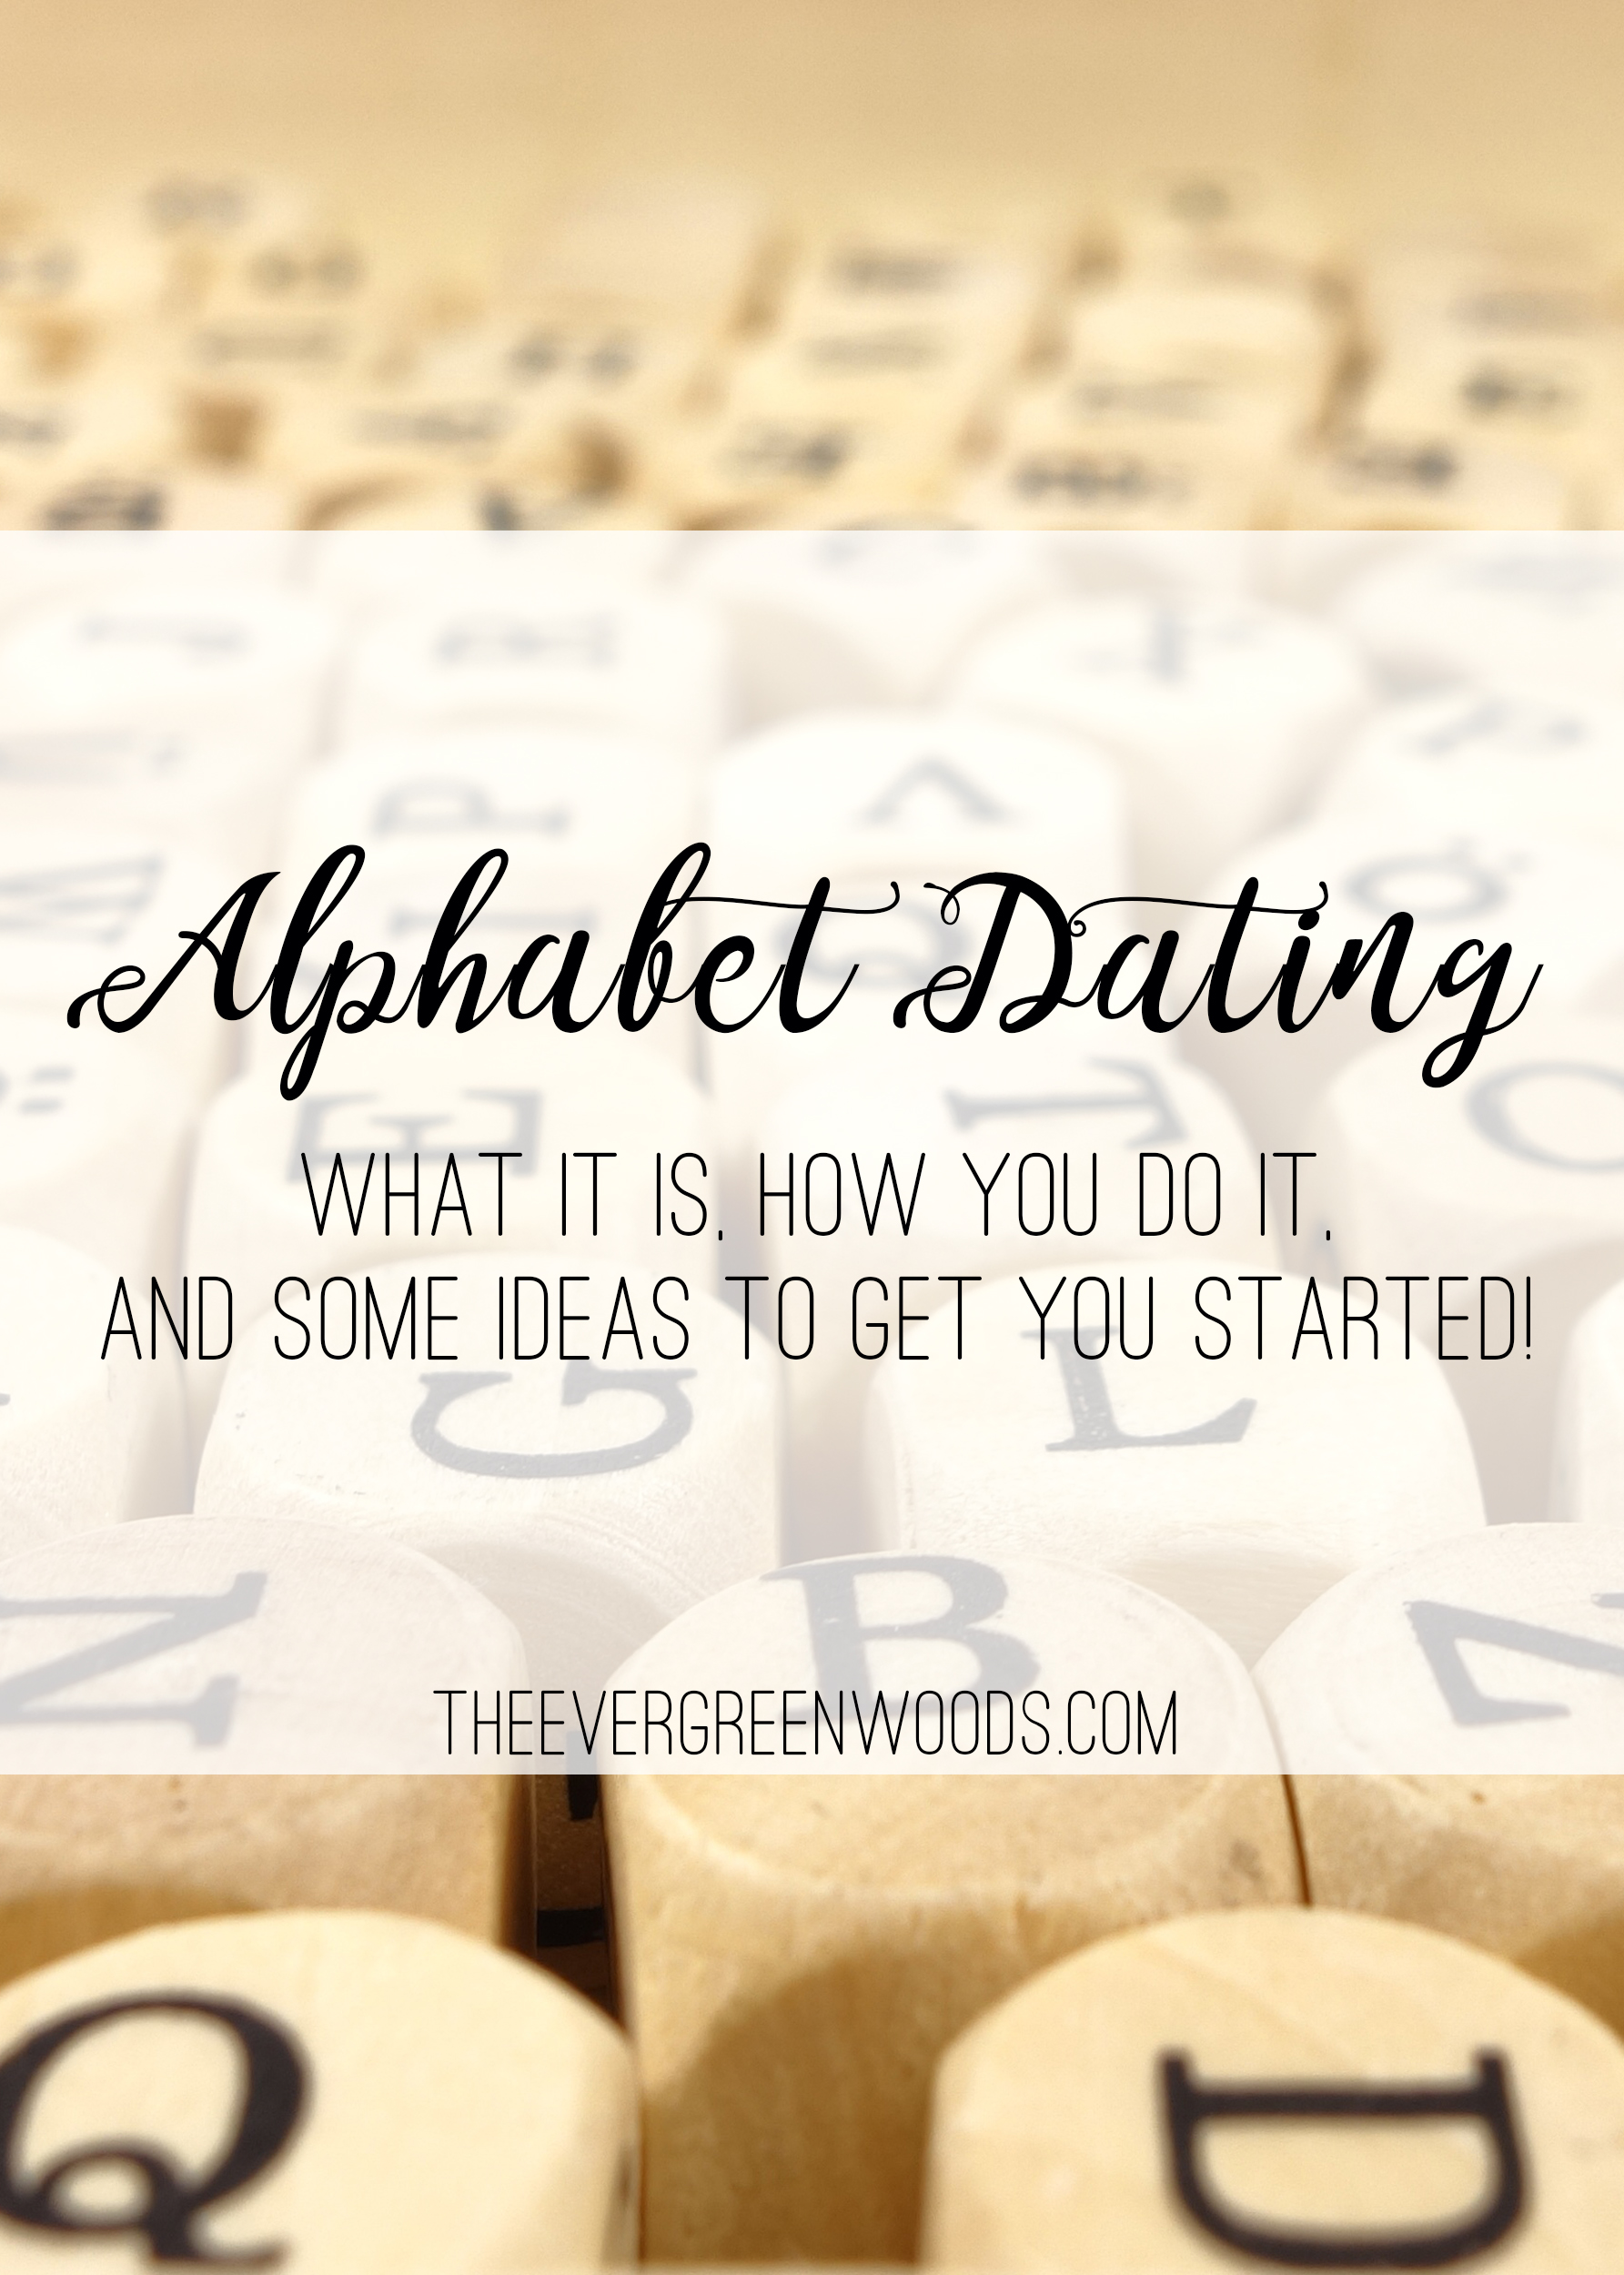 Here are some great tips and ideas on how to bring some fun to your relationship with alphabet dating!